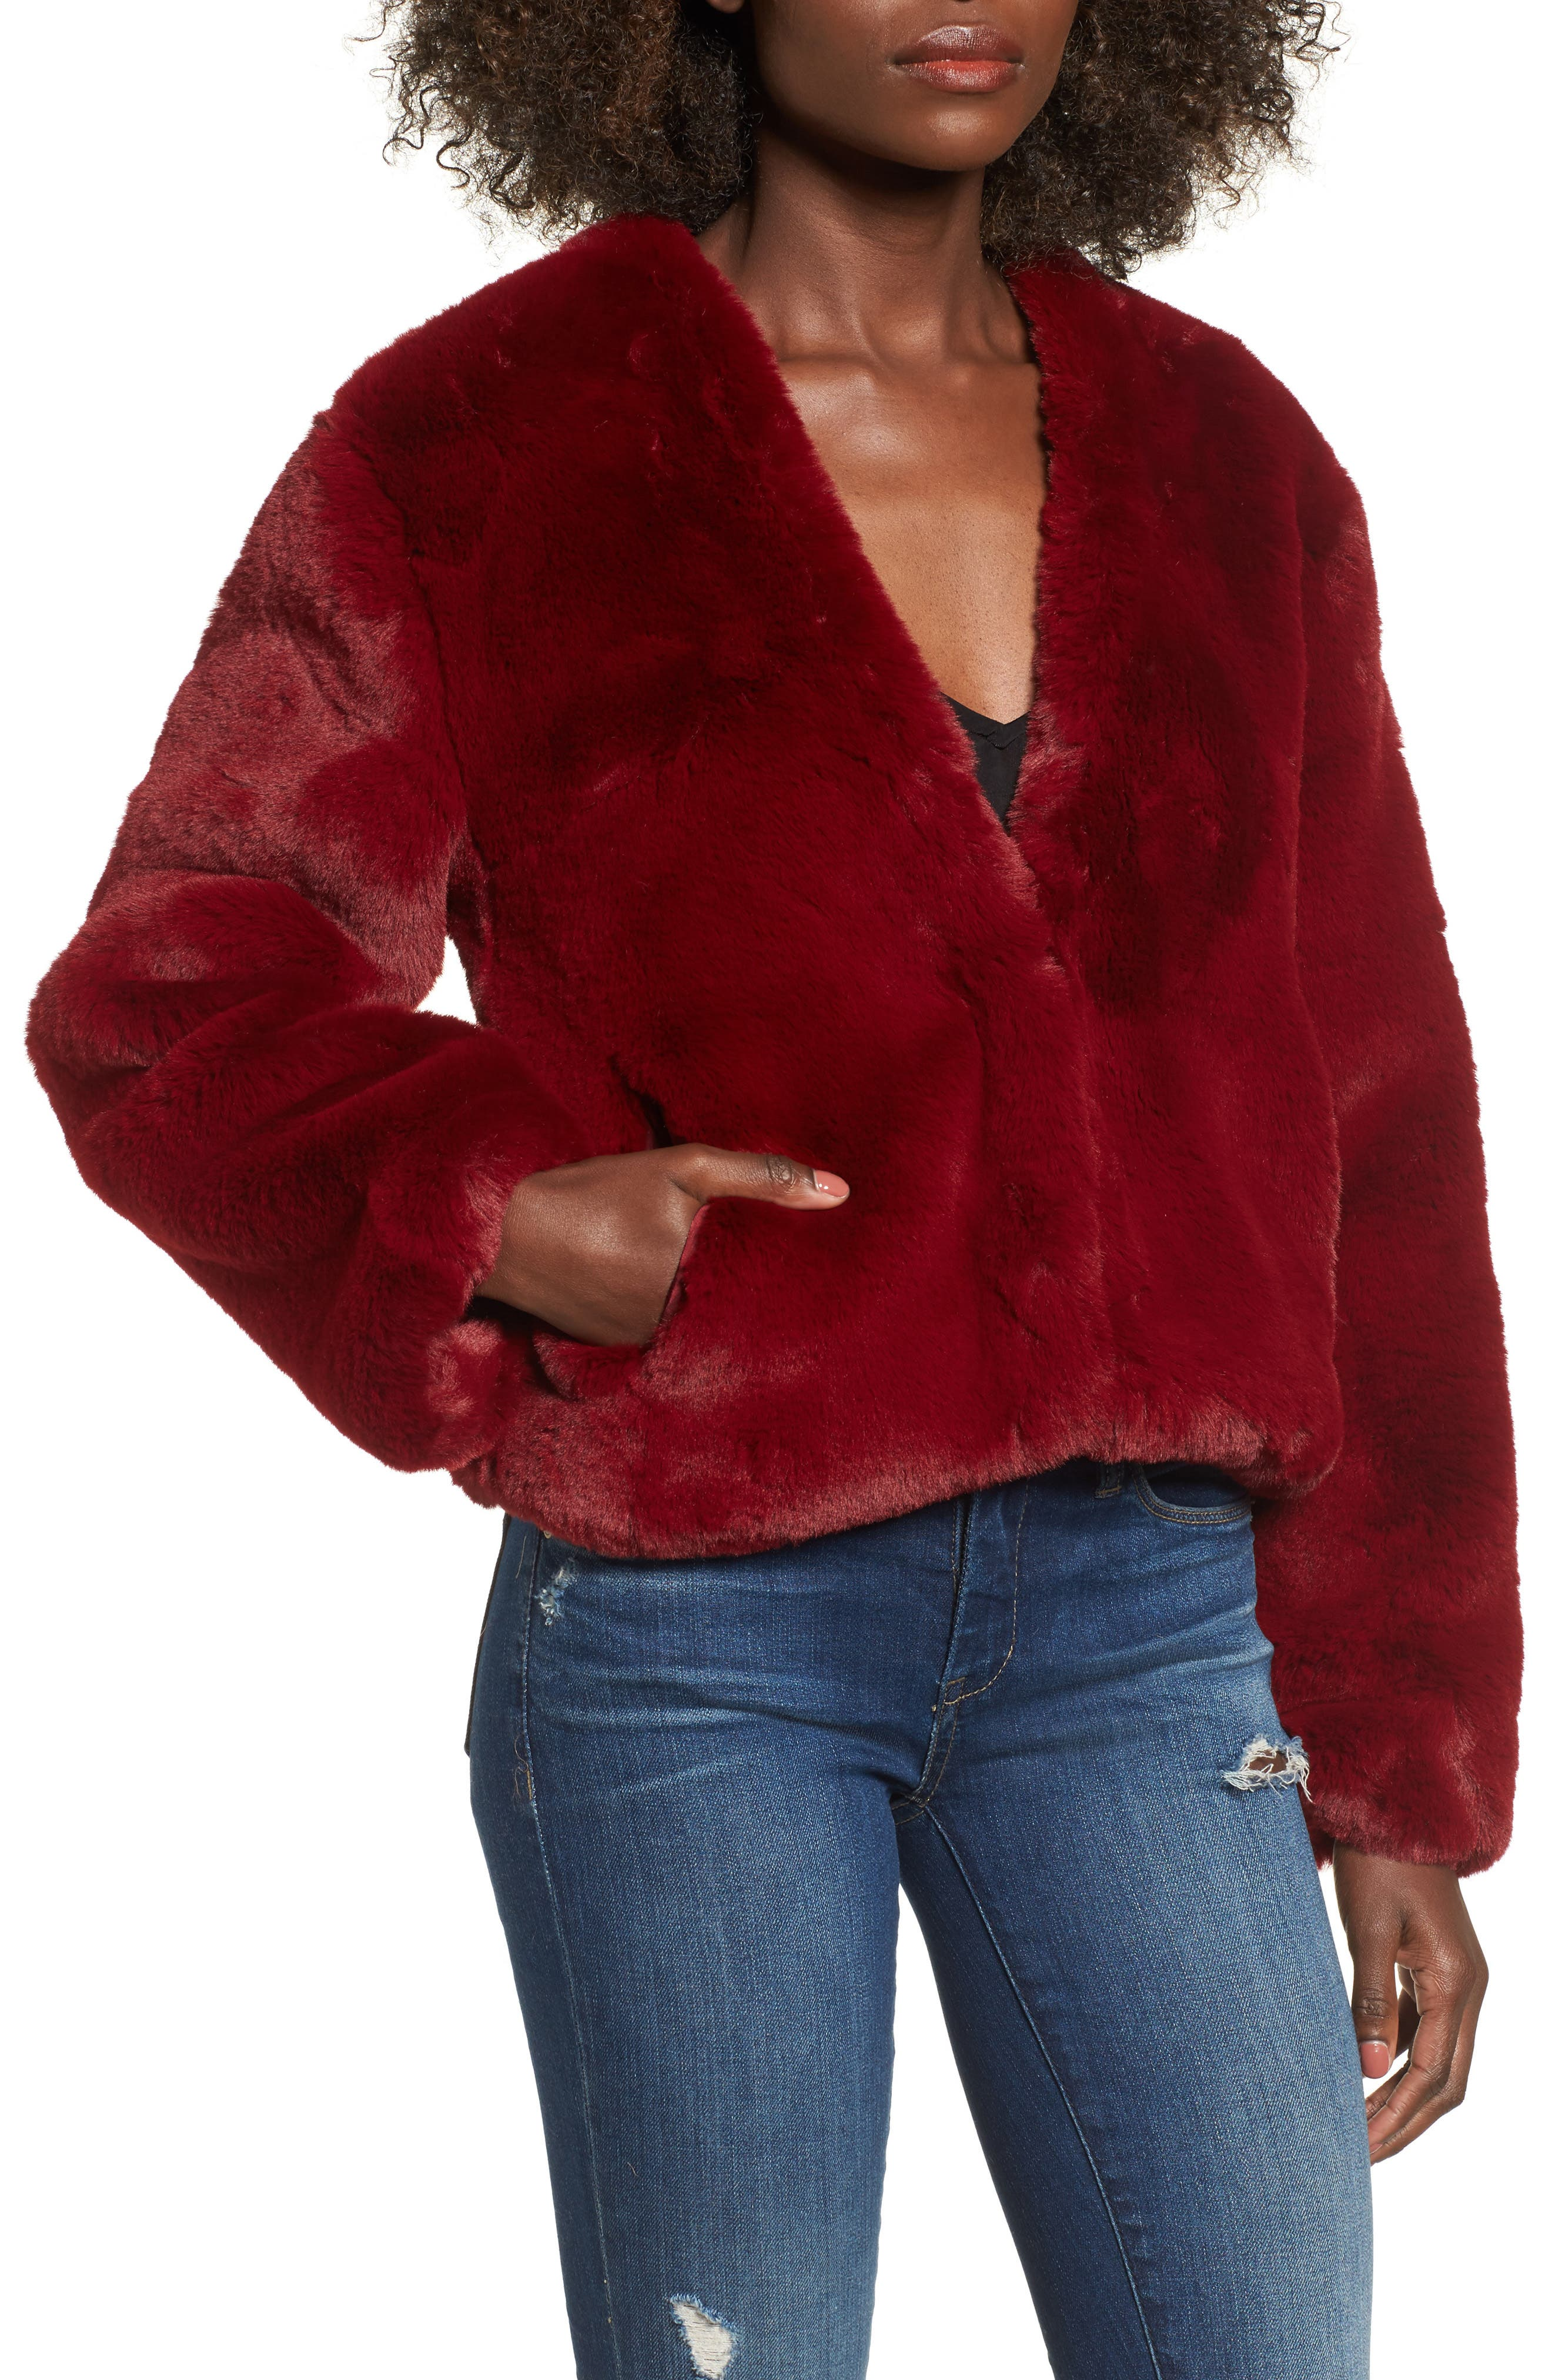 Lonely Hearts Faux Fur Jacket,                             Alternate thumbnail 4, color,                             600